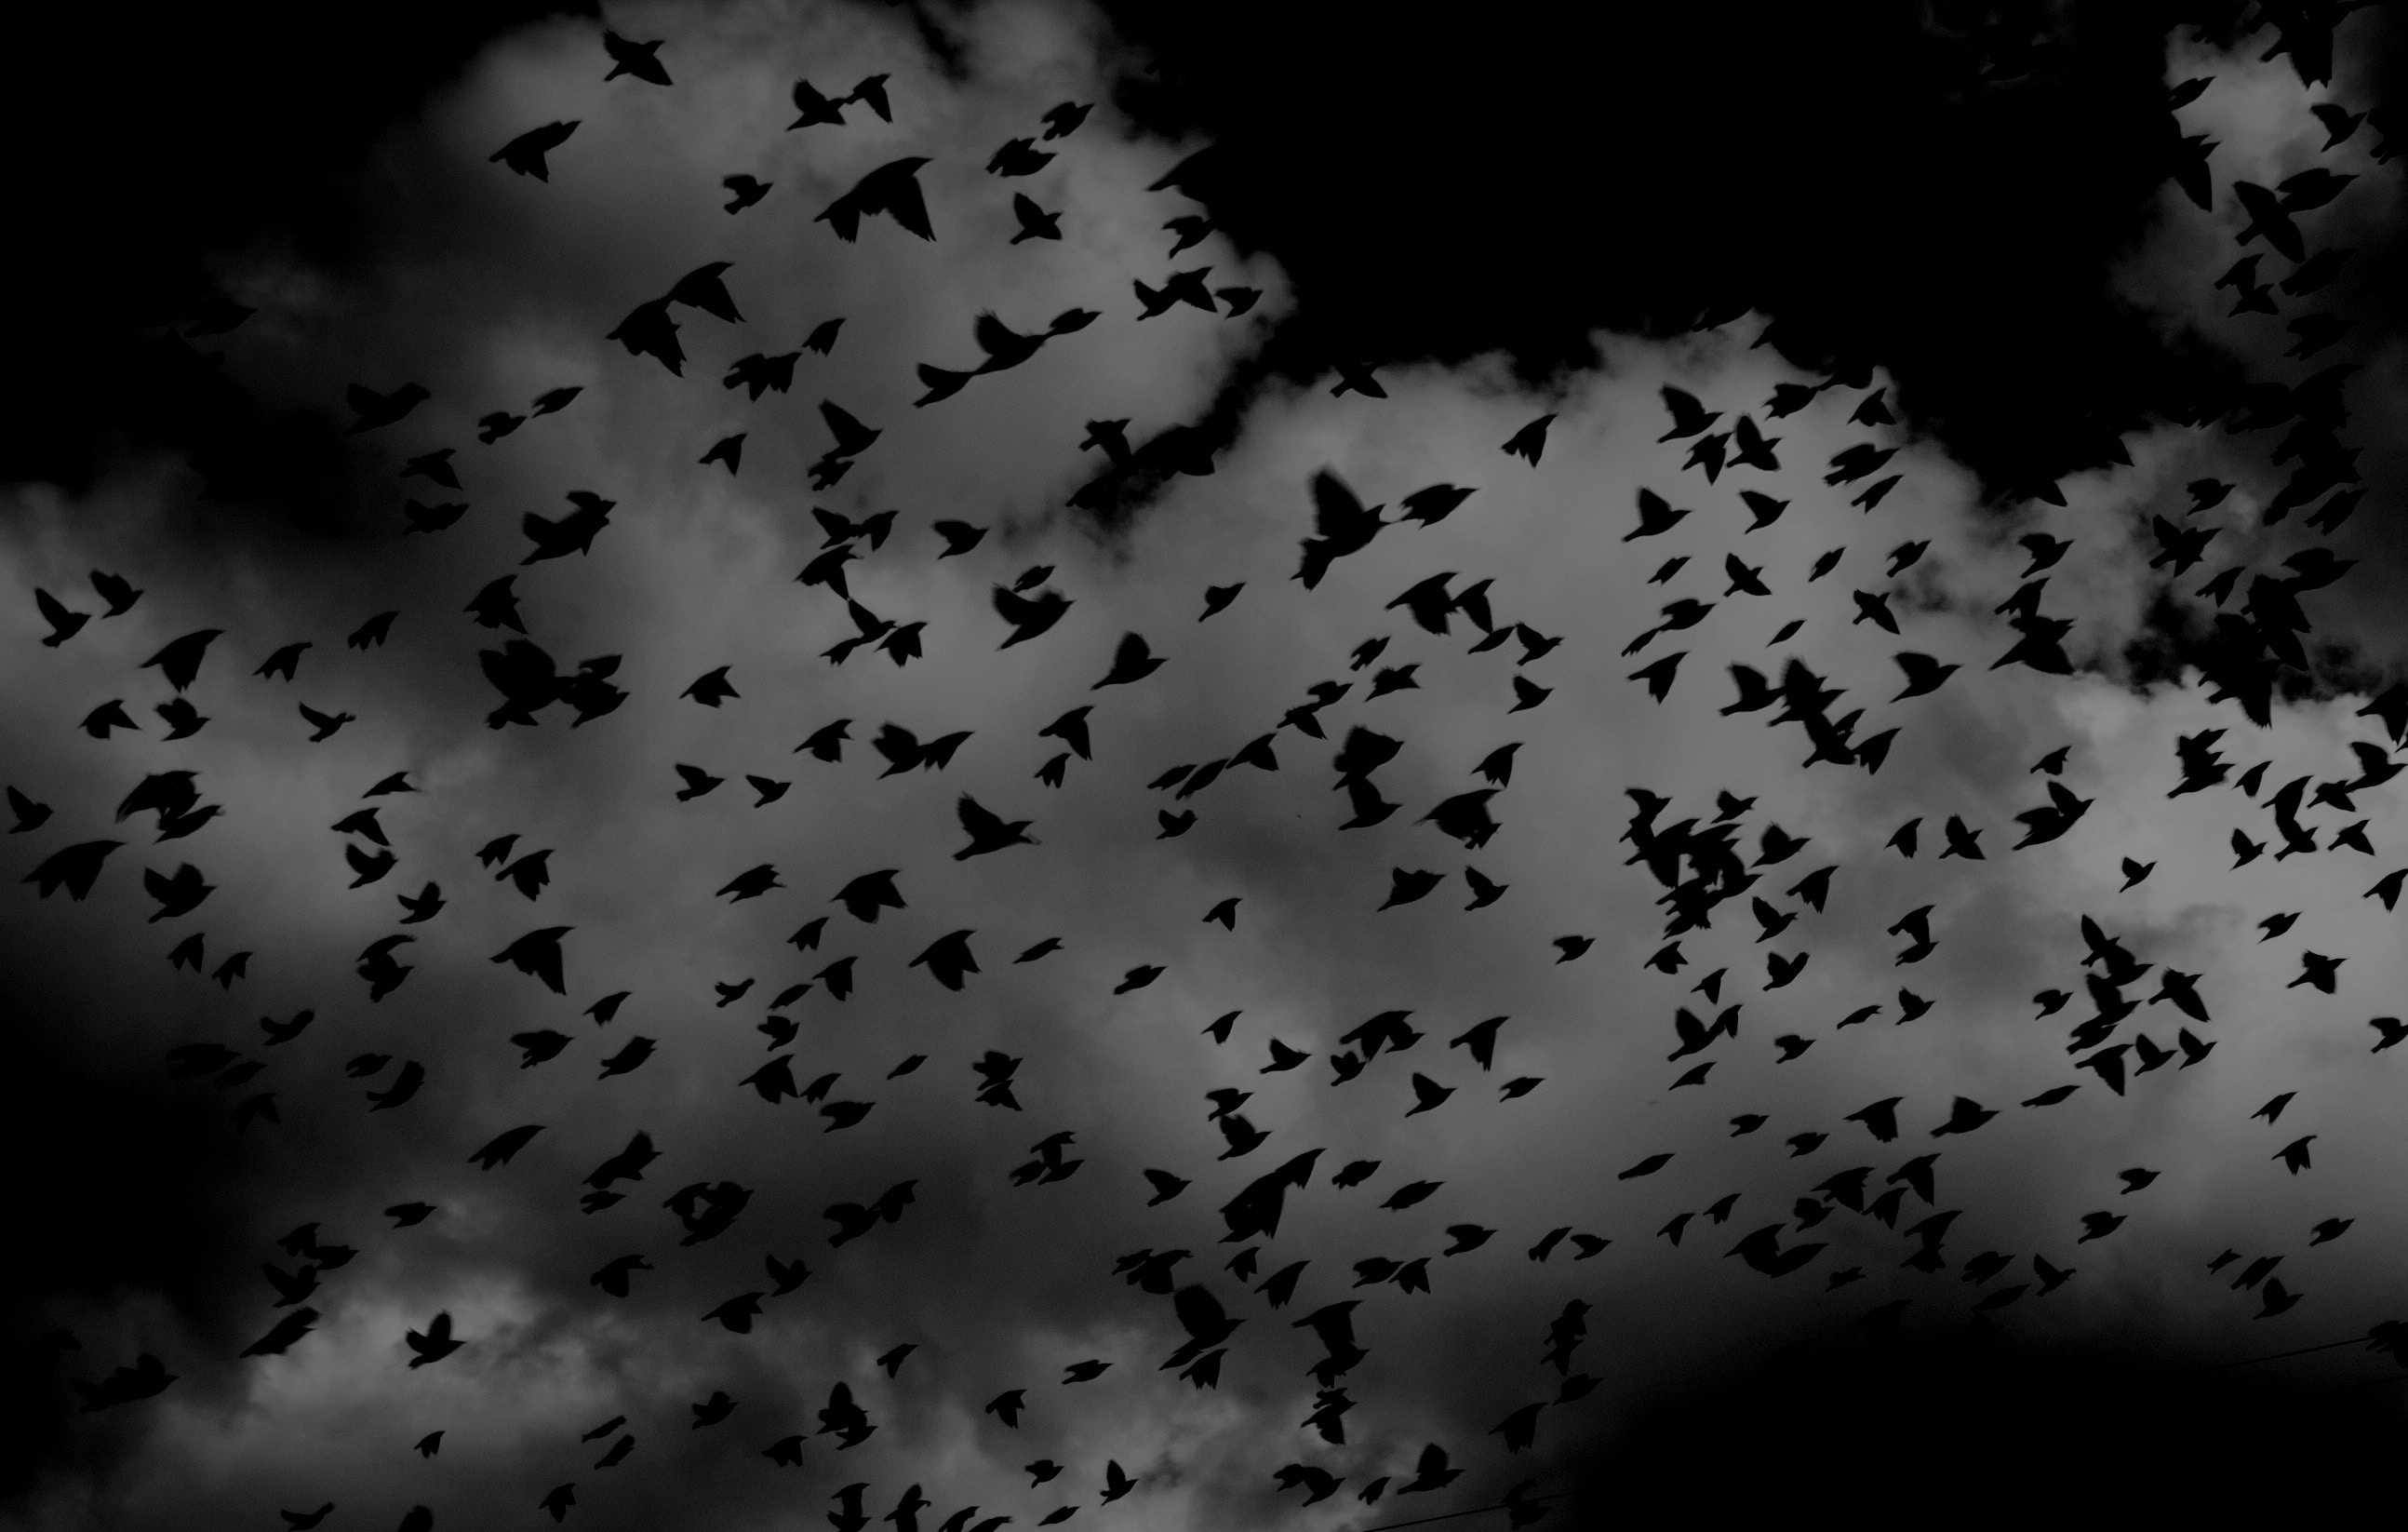 Black and white birds flying in the sky